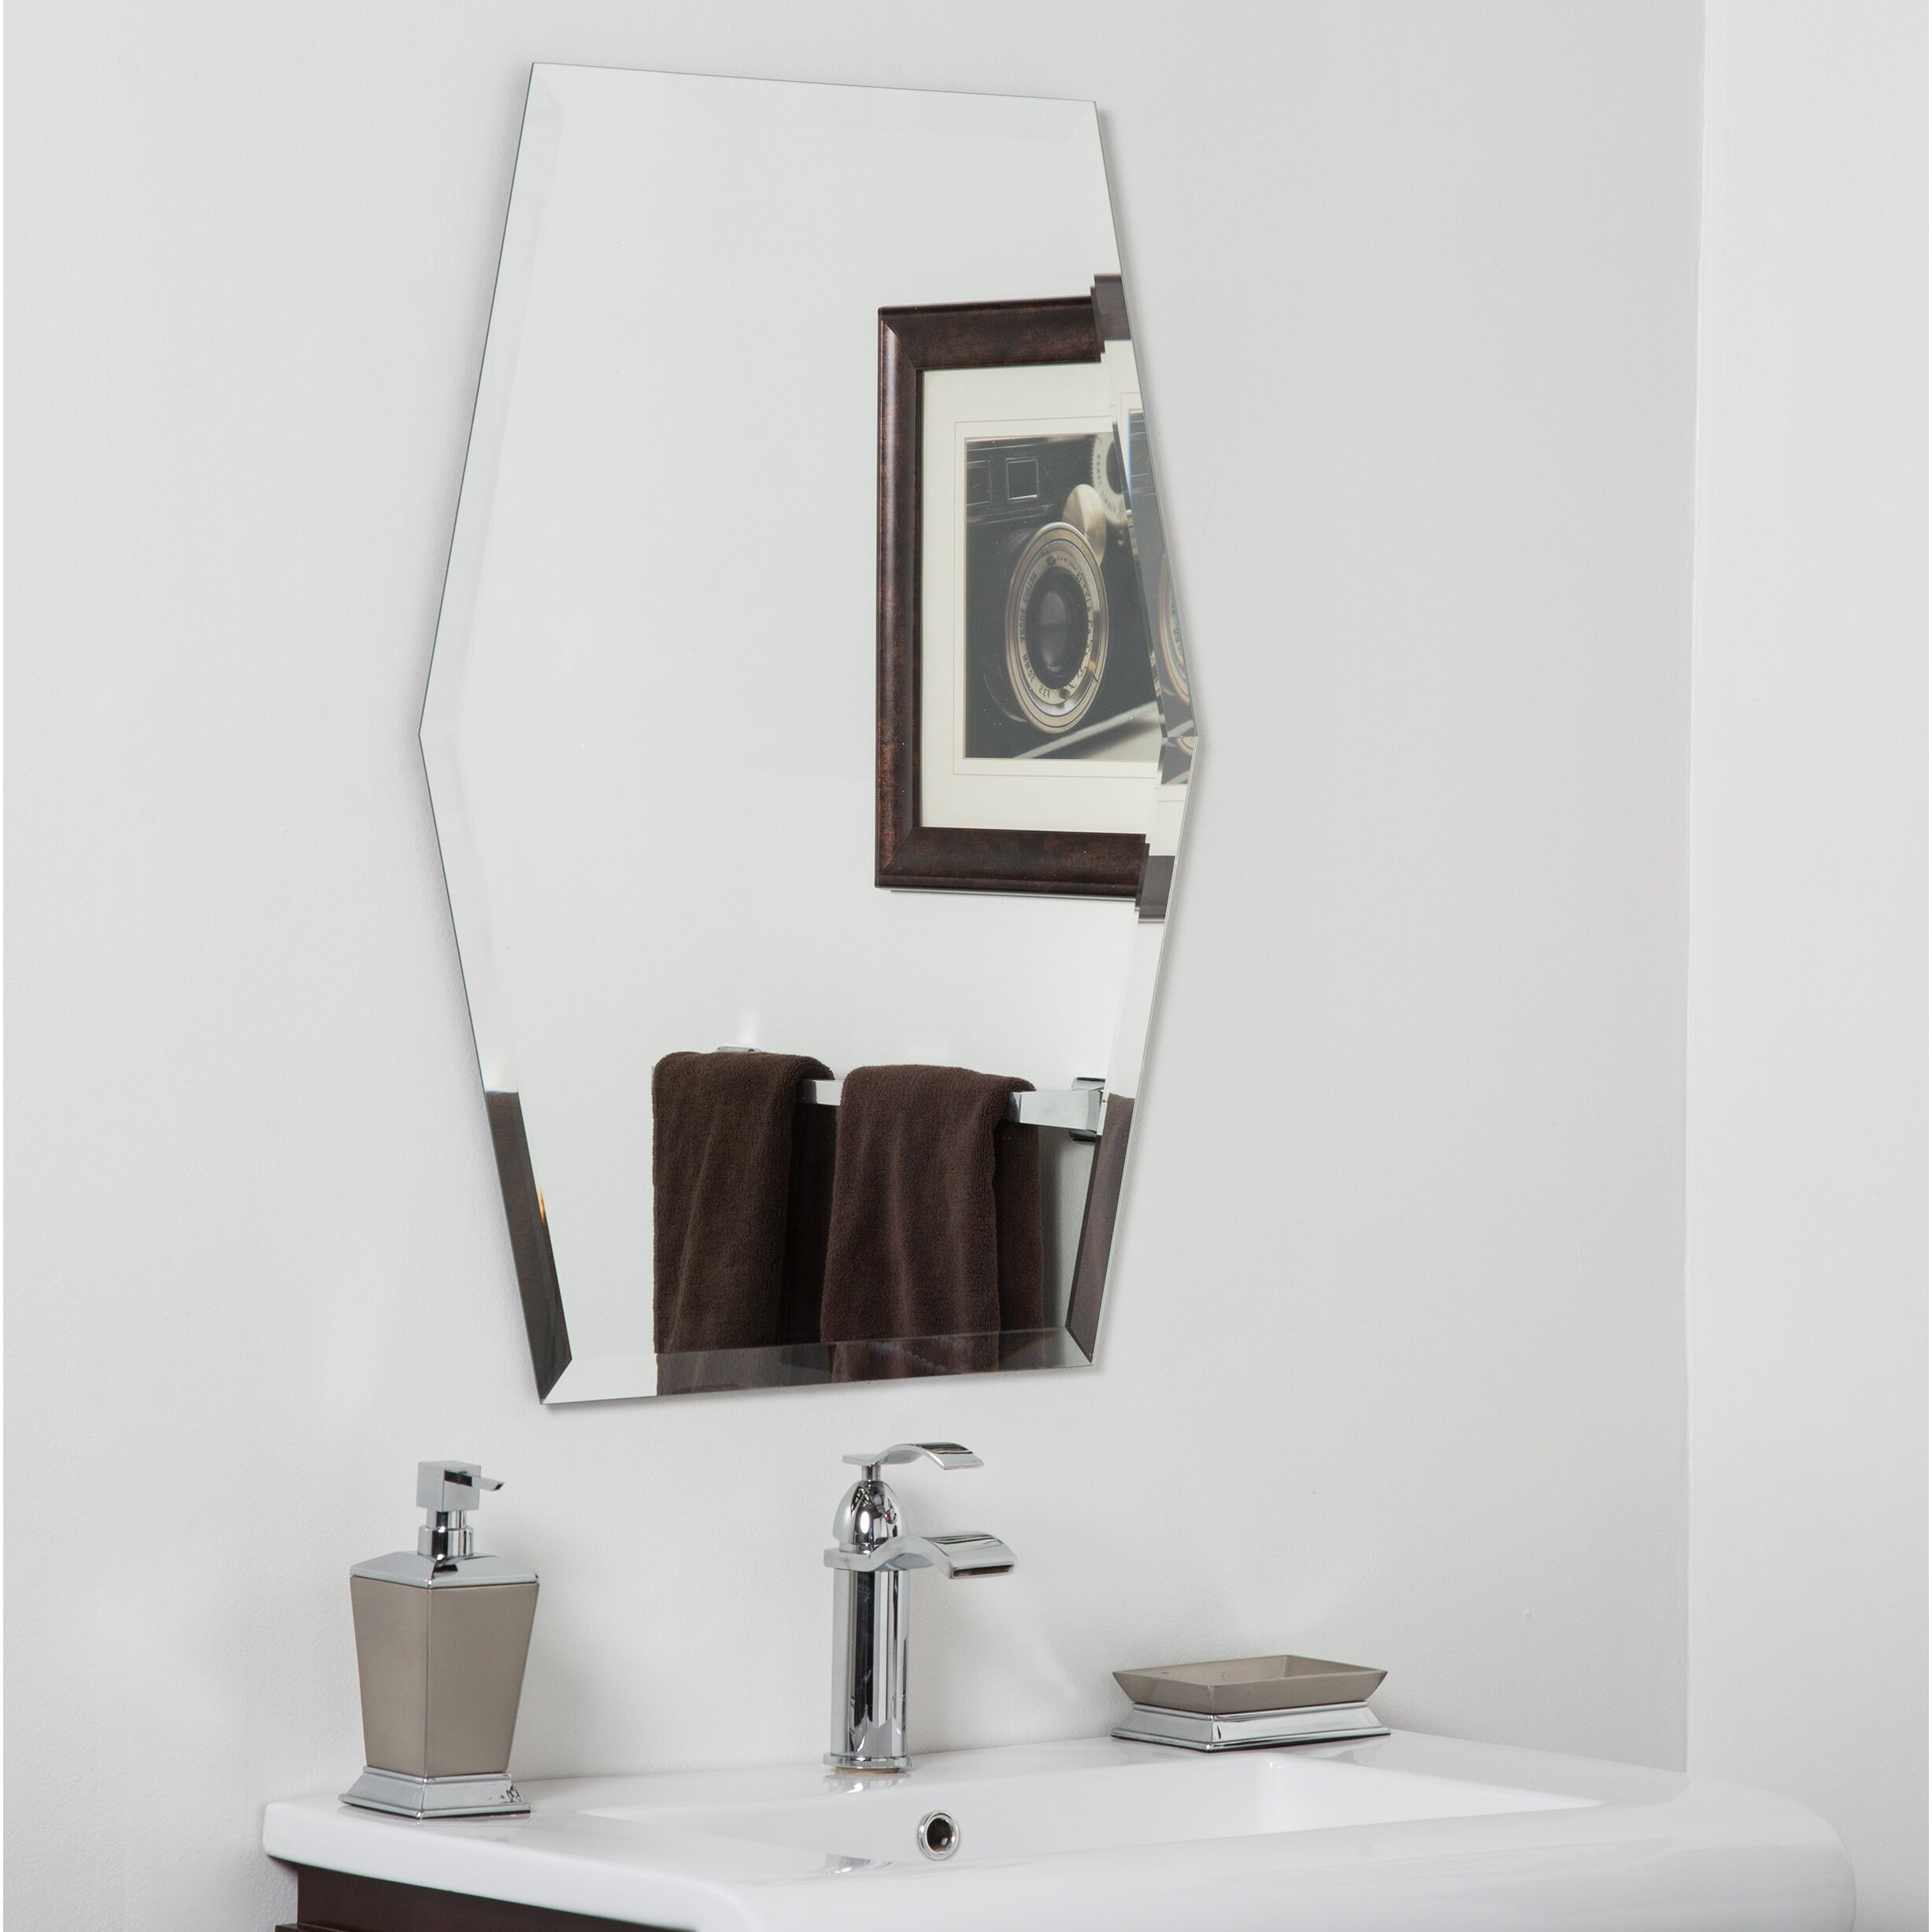 Decor wonderland century bathroom wall mirror wayfair for Decorative wall mirrors for bathrooms